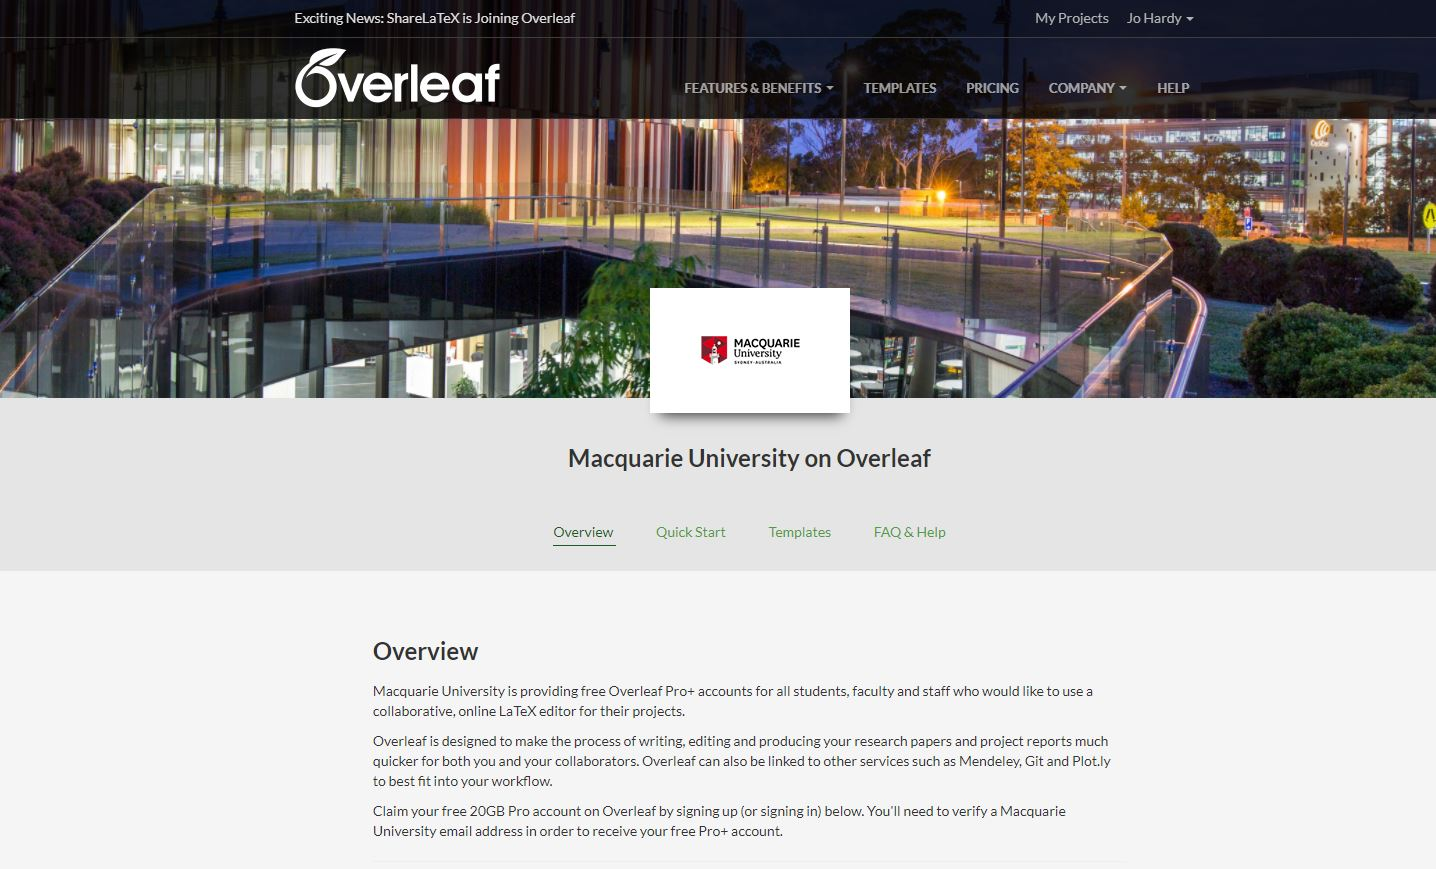 Screenshot showing Macquarie University's custom Overleaf portal